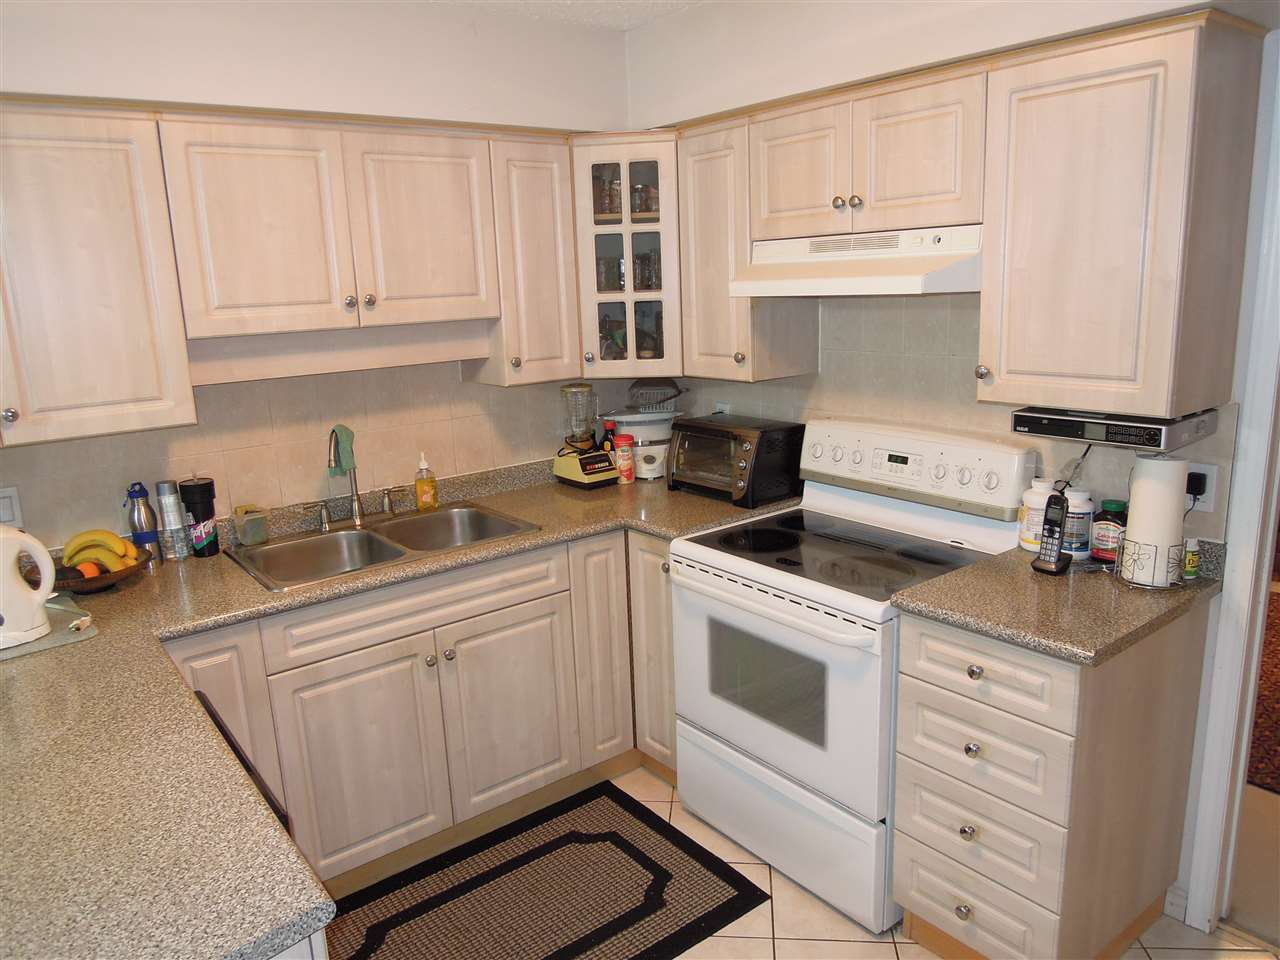 Photo 5: Photos: 3080 ROYAL OAK AVENUE in Burnaby: Central BN House 1/2 Duplex for sale (Burnaby North)  : MLS®# R2143810